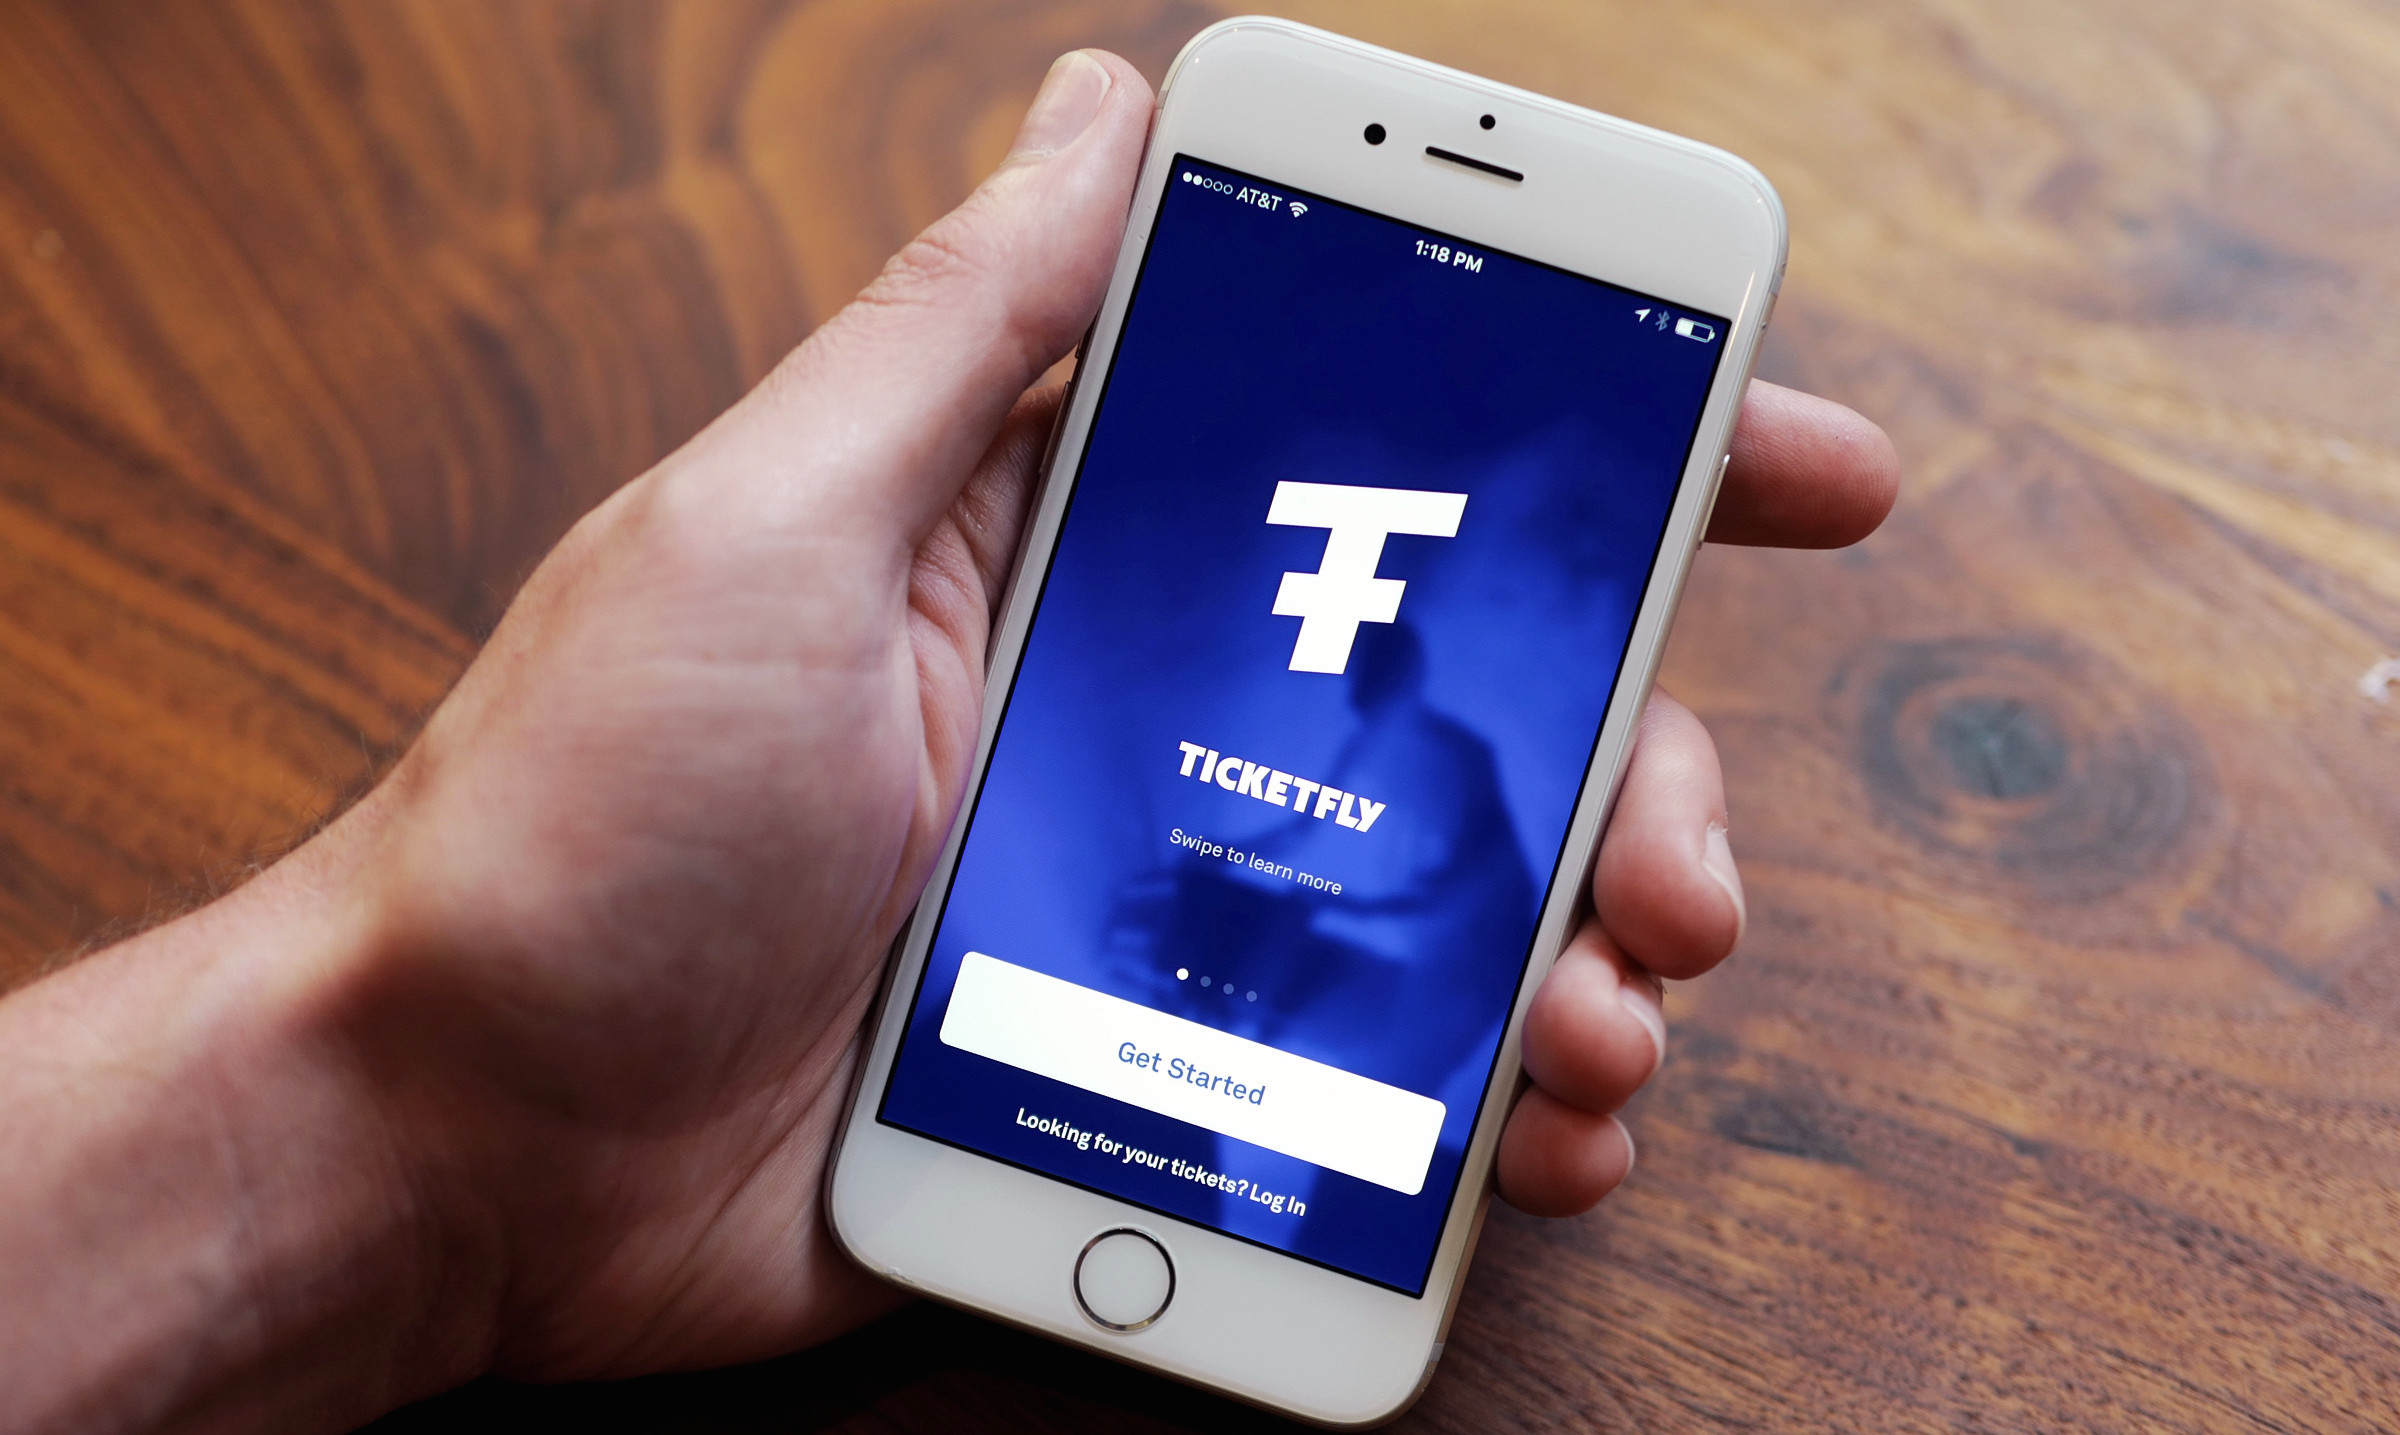 Using Ticketfly to go to a show? It's been hacked, company says